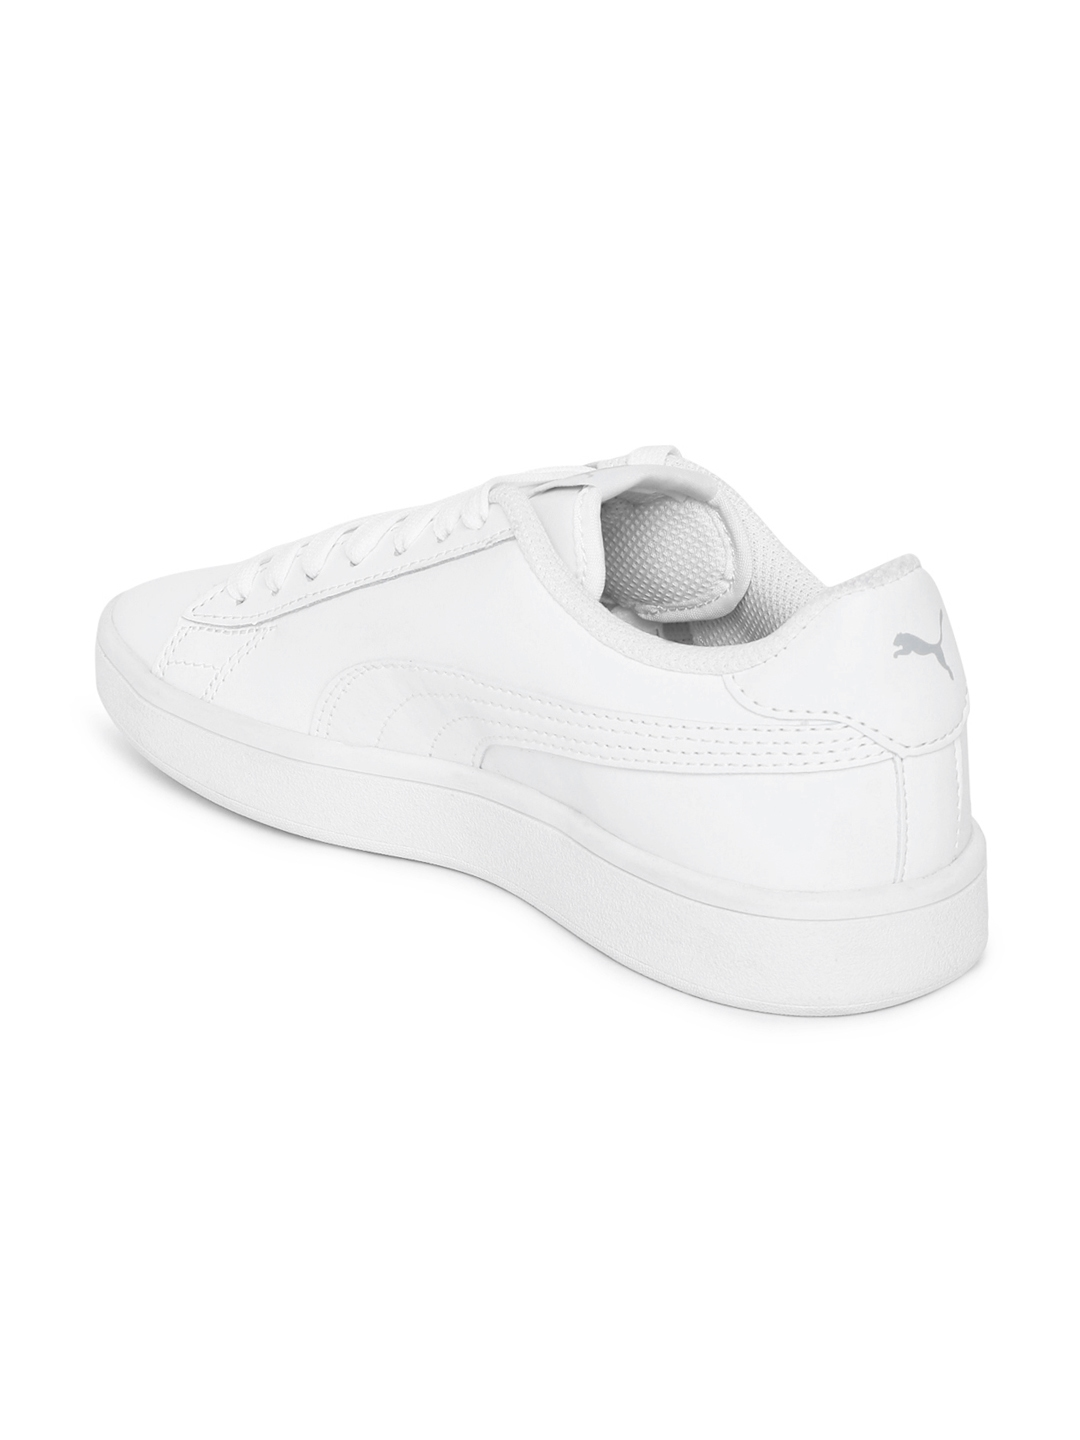 04b8c135a9 Buy Puma Men White Smash V2 L Leather Sneakers - Casual Shoes for ...